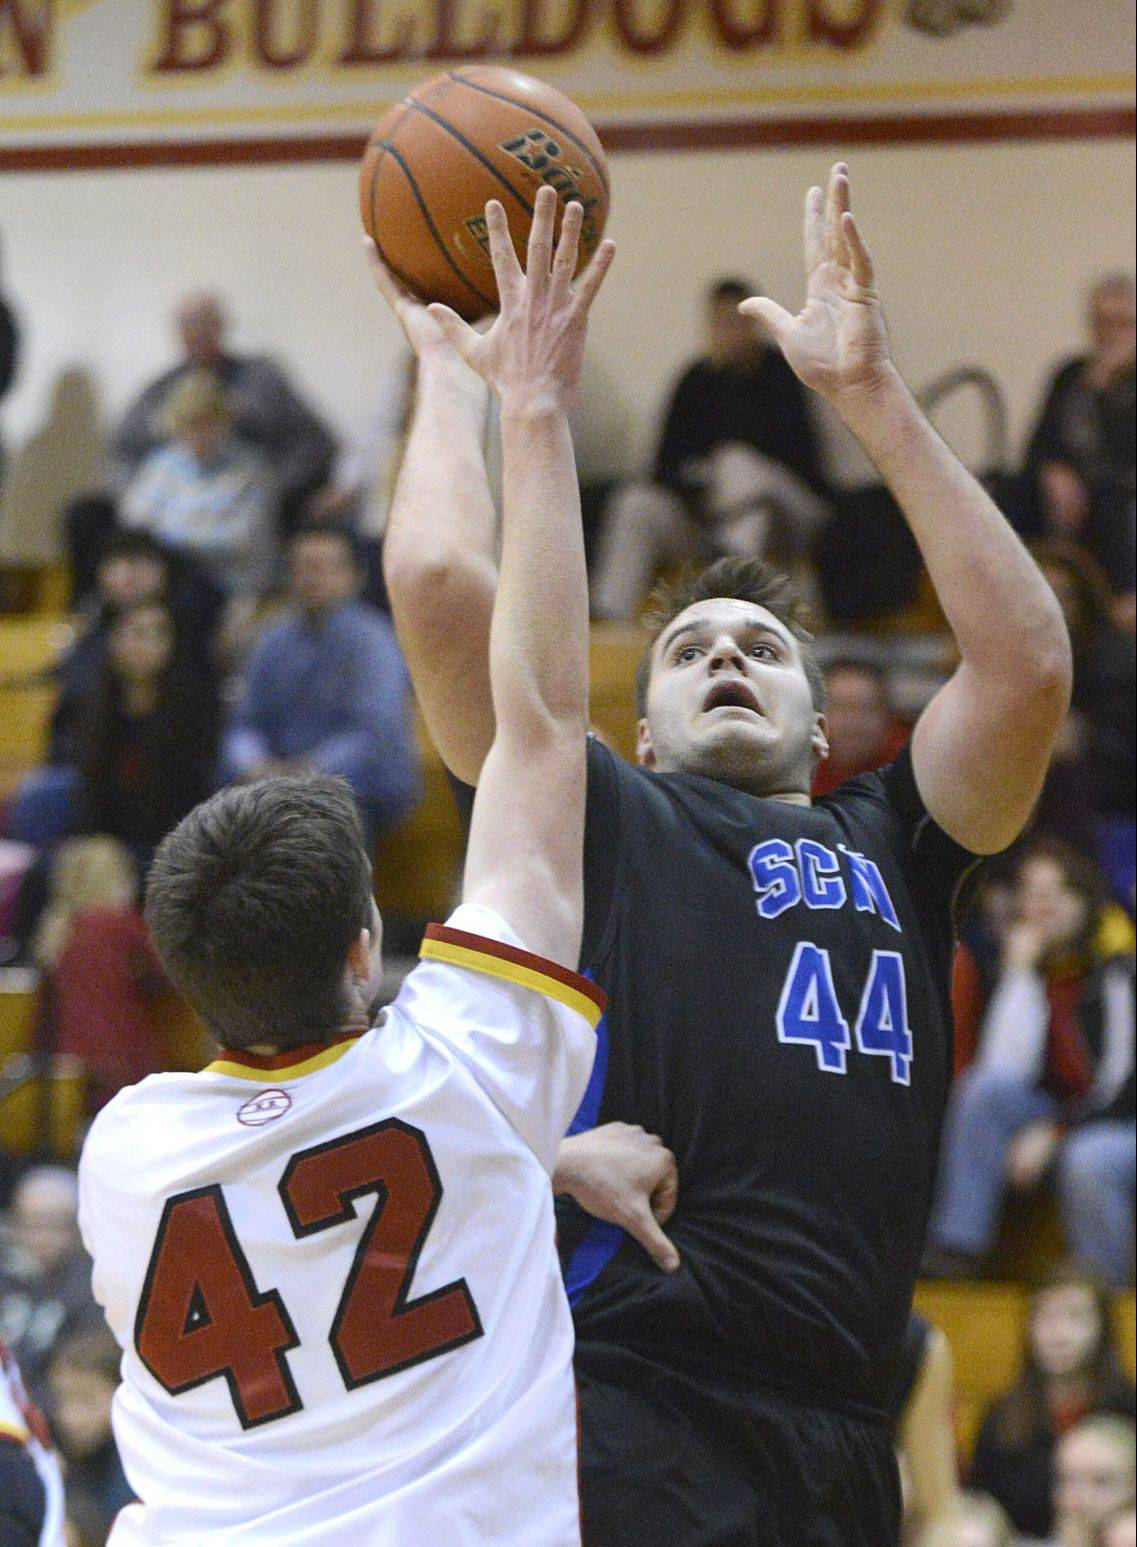 St. Charles North's Chase Gianacakos shoots over Batavia's Ryan Olson in the second quarter on Friday in Batavia.